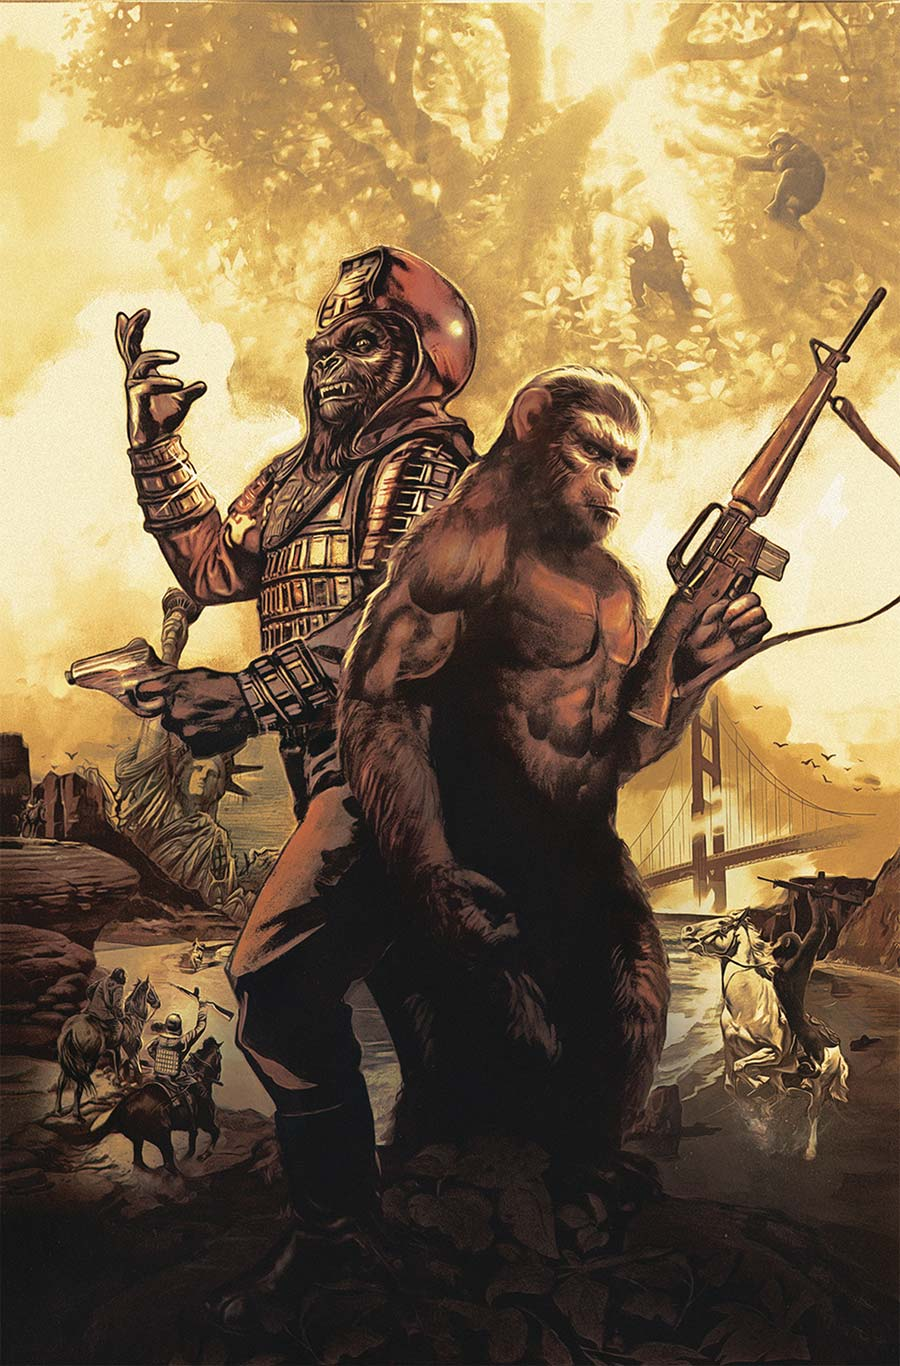 Planet Of Apes: The Simian Age